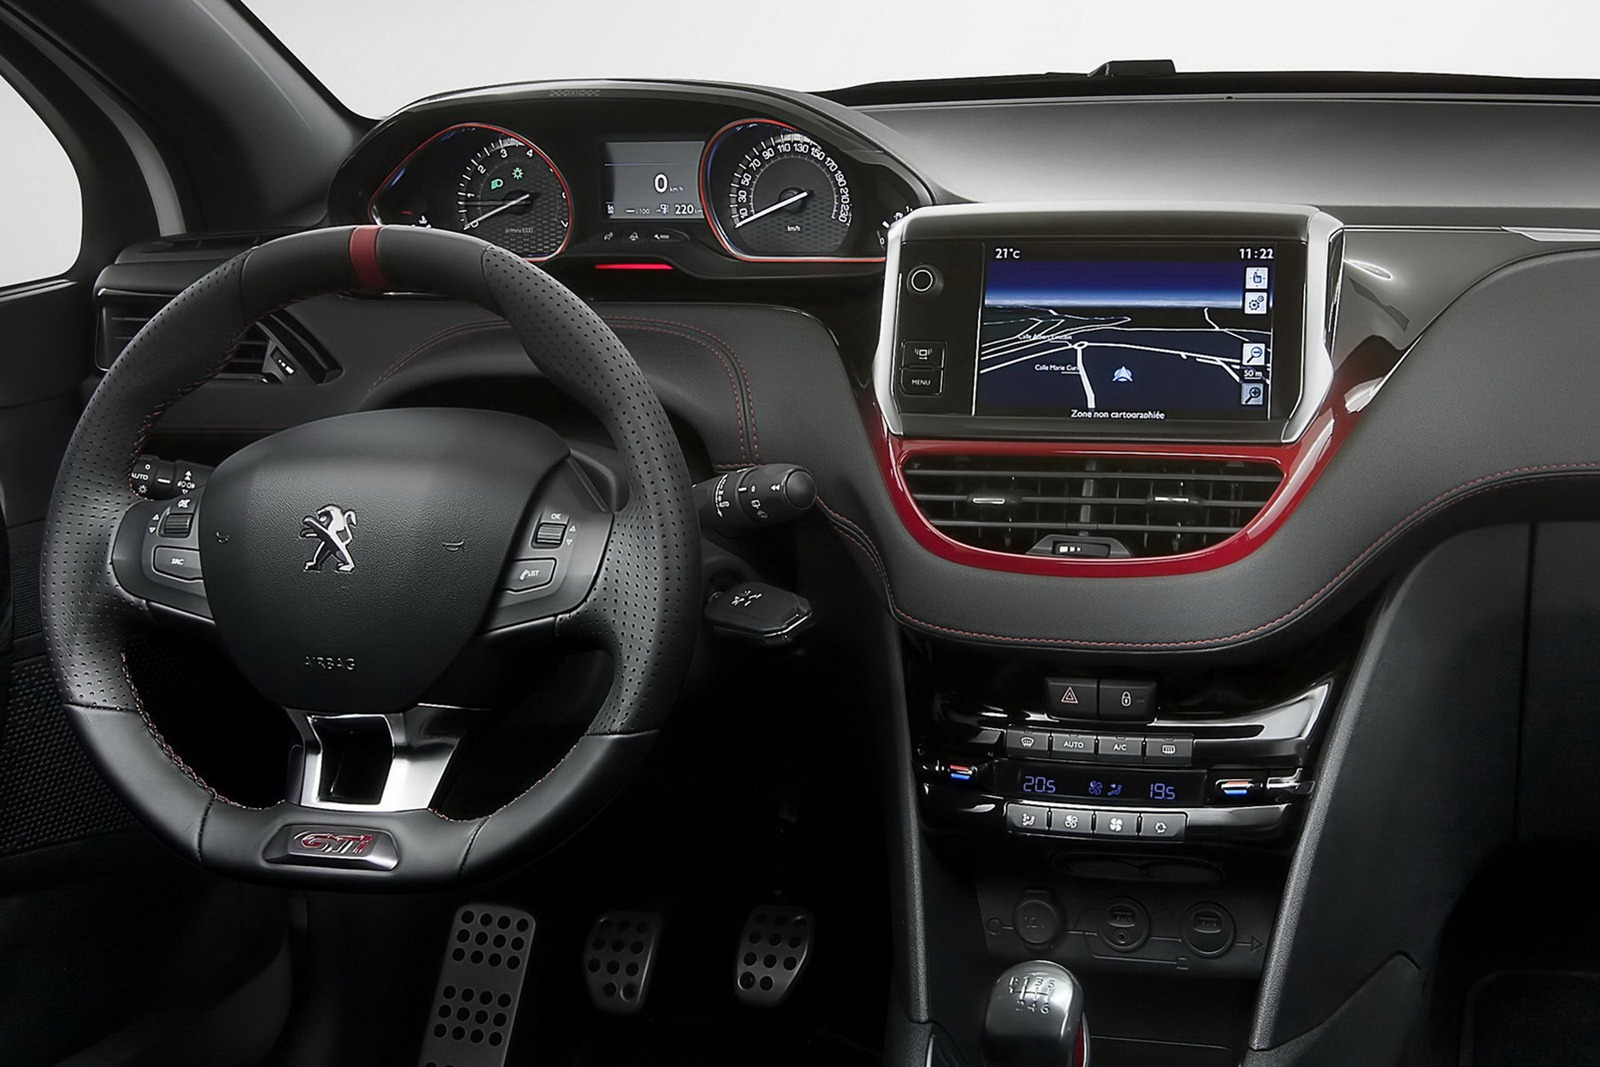 Peugeot 208 interieur car interior design for Interieur design